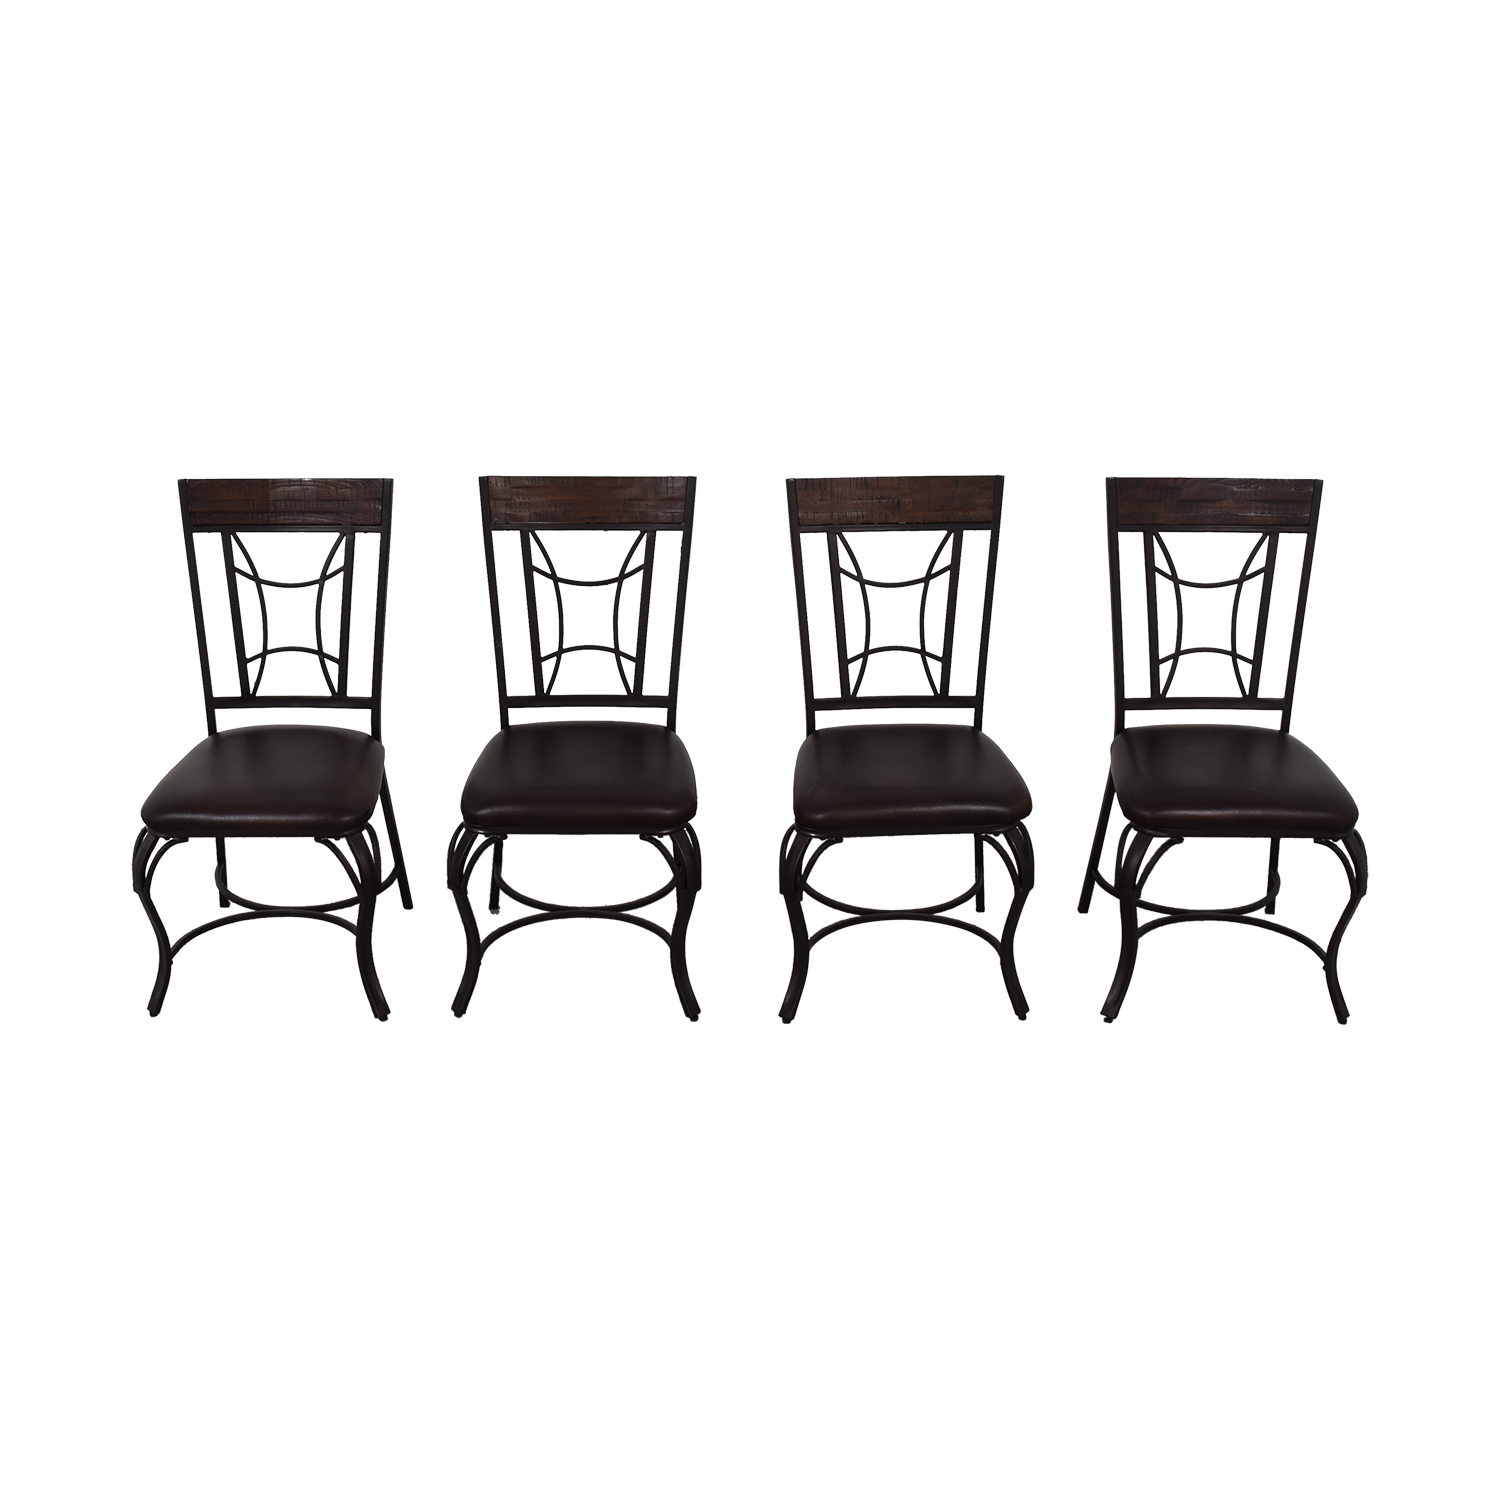 48 Off Hillsdale Furniture Hillsdale Furniture Dining Chairs Chairs